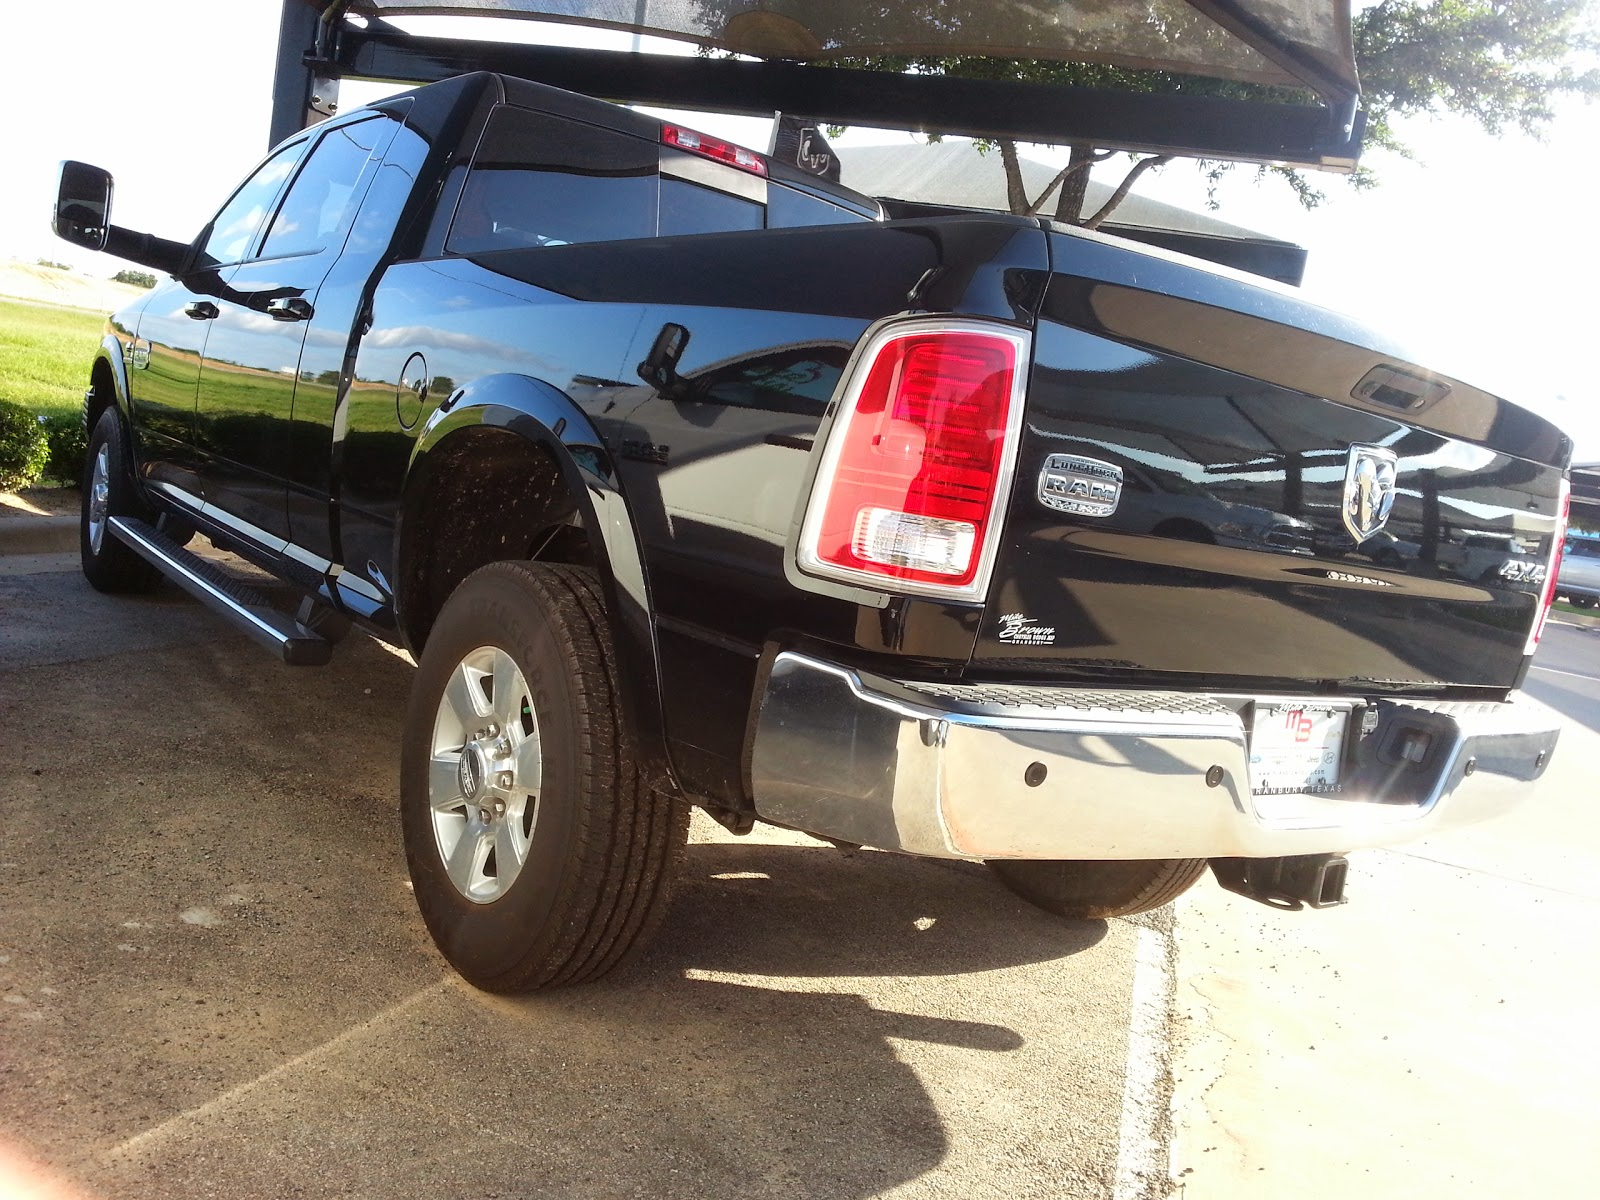 Tdy sales 57516 new 2013 ram 3500 swr longhorn cummins diesel tdy sales do it yourself trick it out ram 3500 leveling kit bigger tires and more httptdysalescat893 solutioingenieria Choice Image